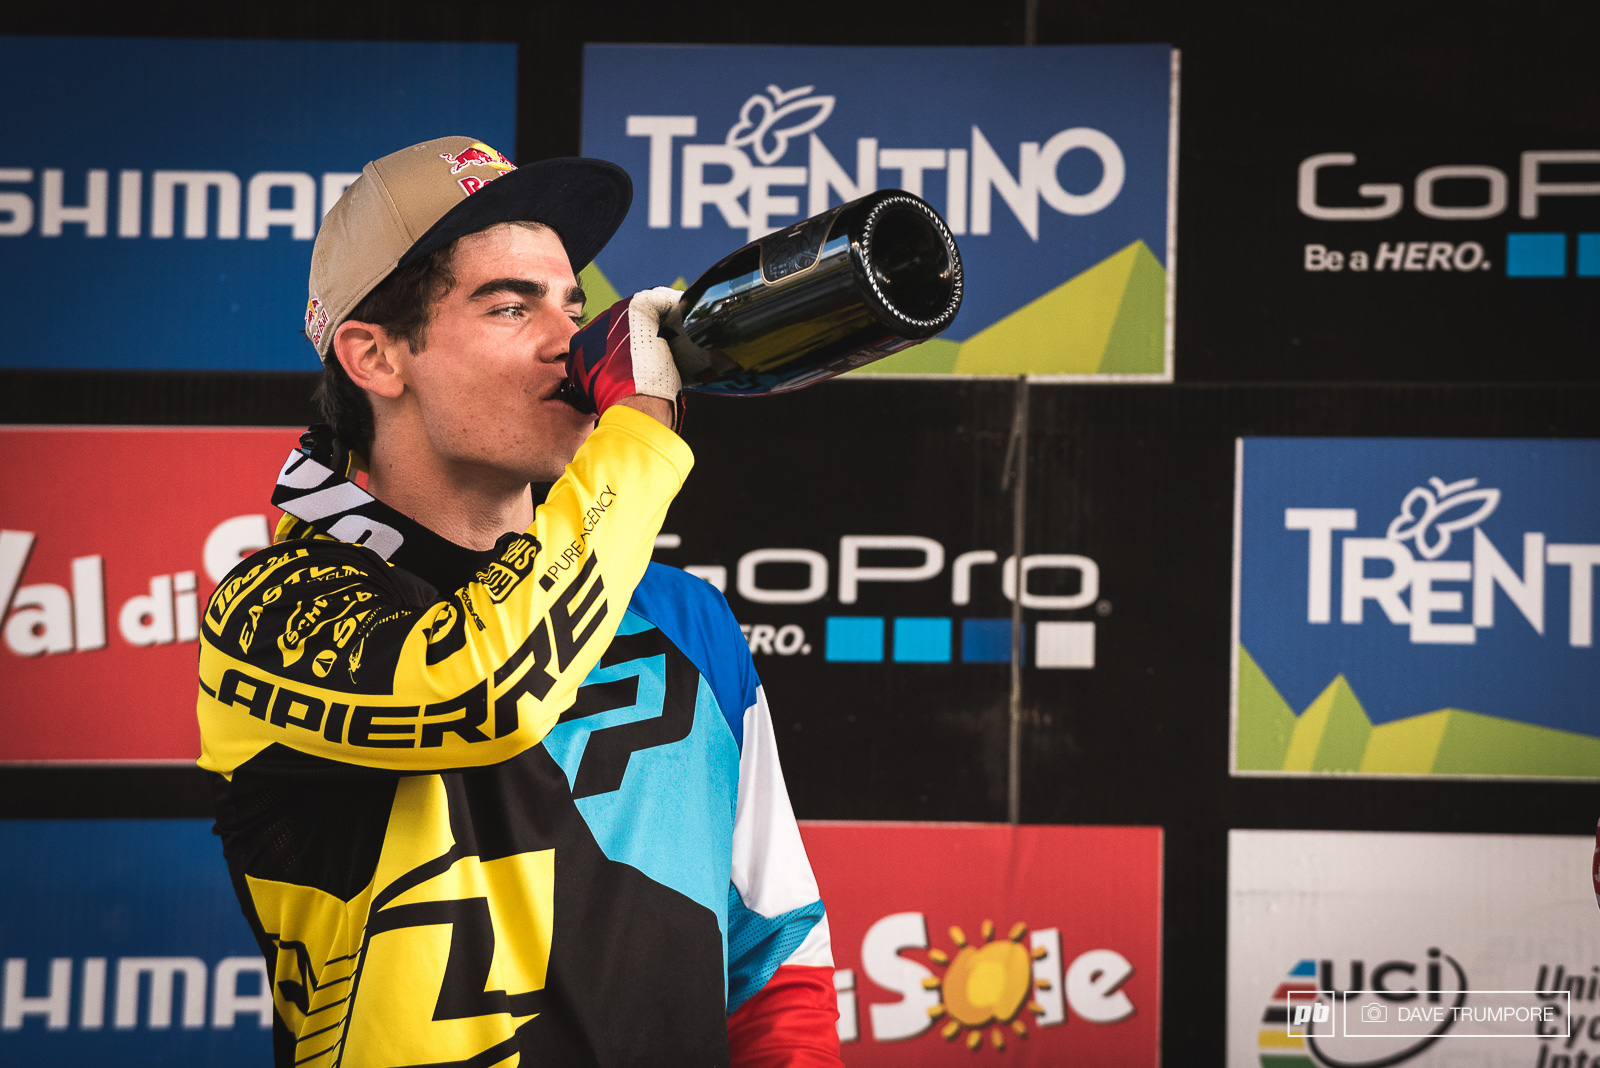 Drink up Loic... Your time will come very soon.